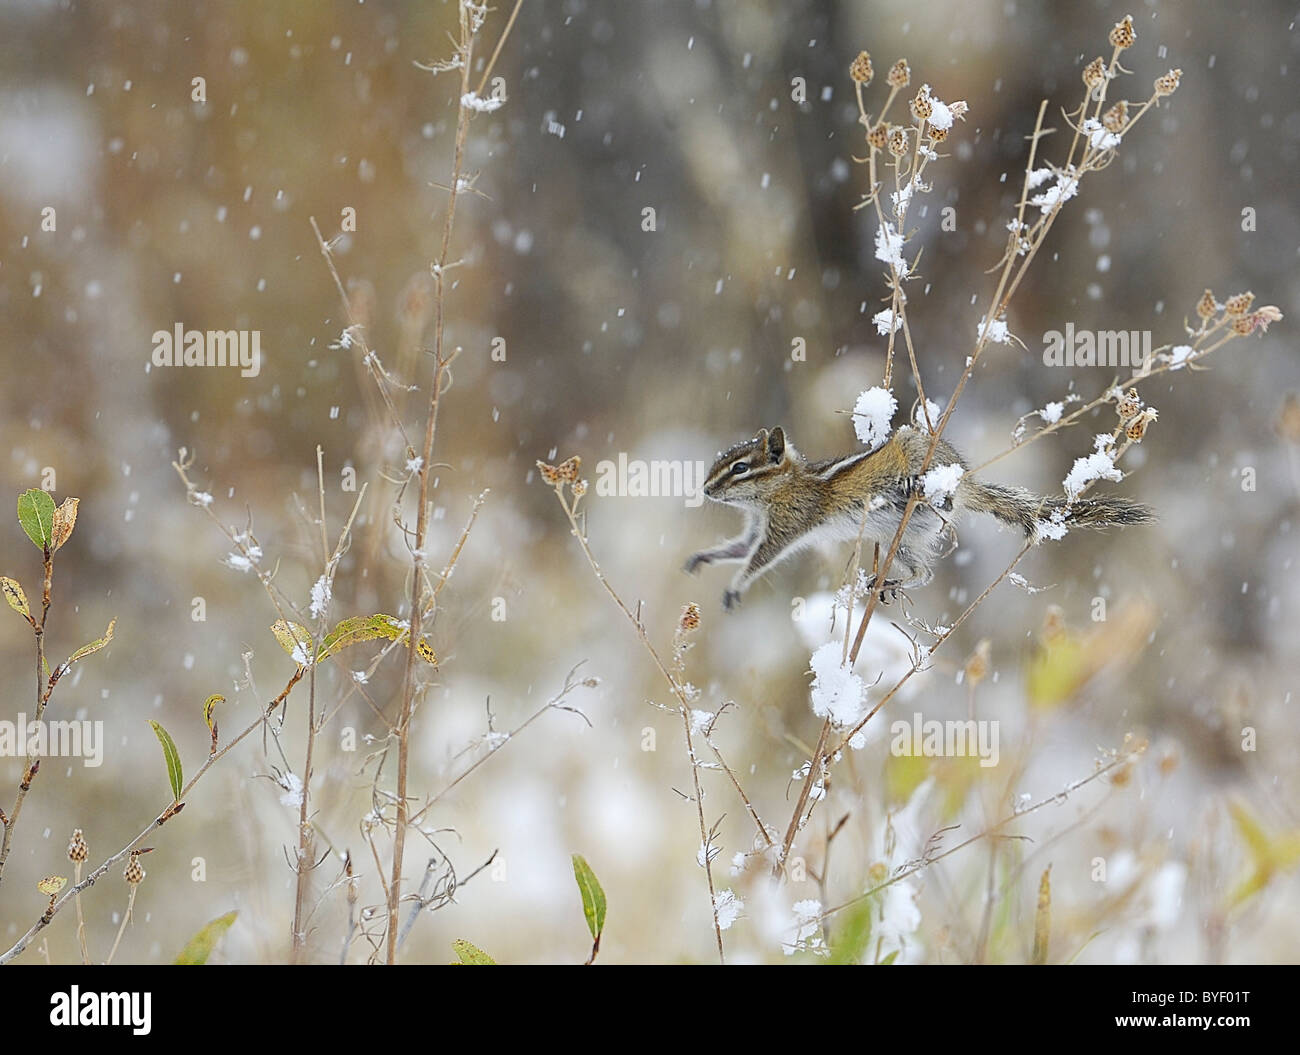 Least Chipmunk jumping stalks in low bushes during snowstorm. Stock Photo